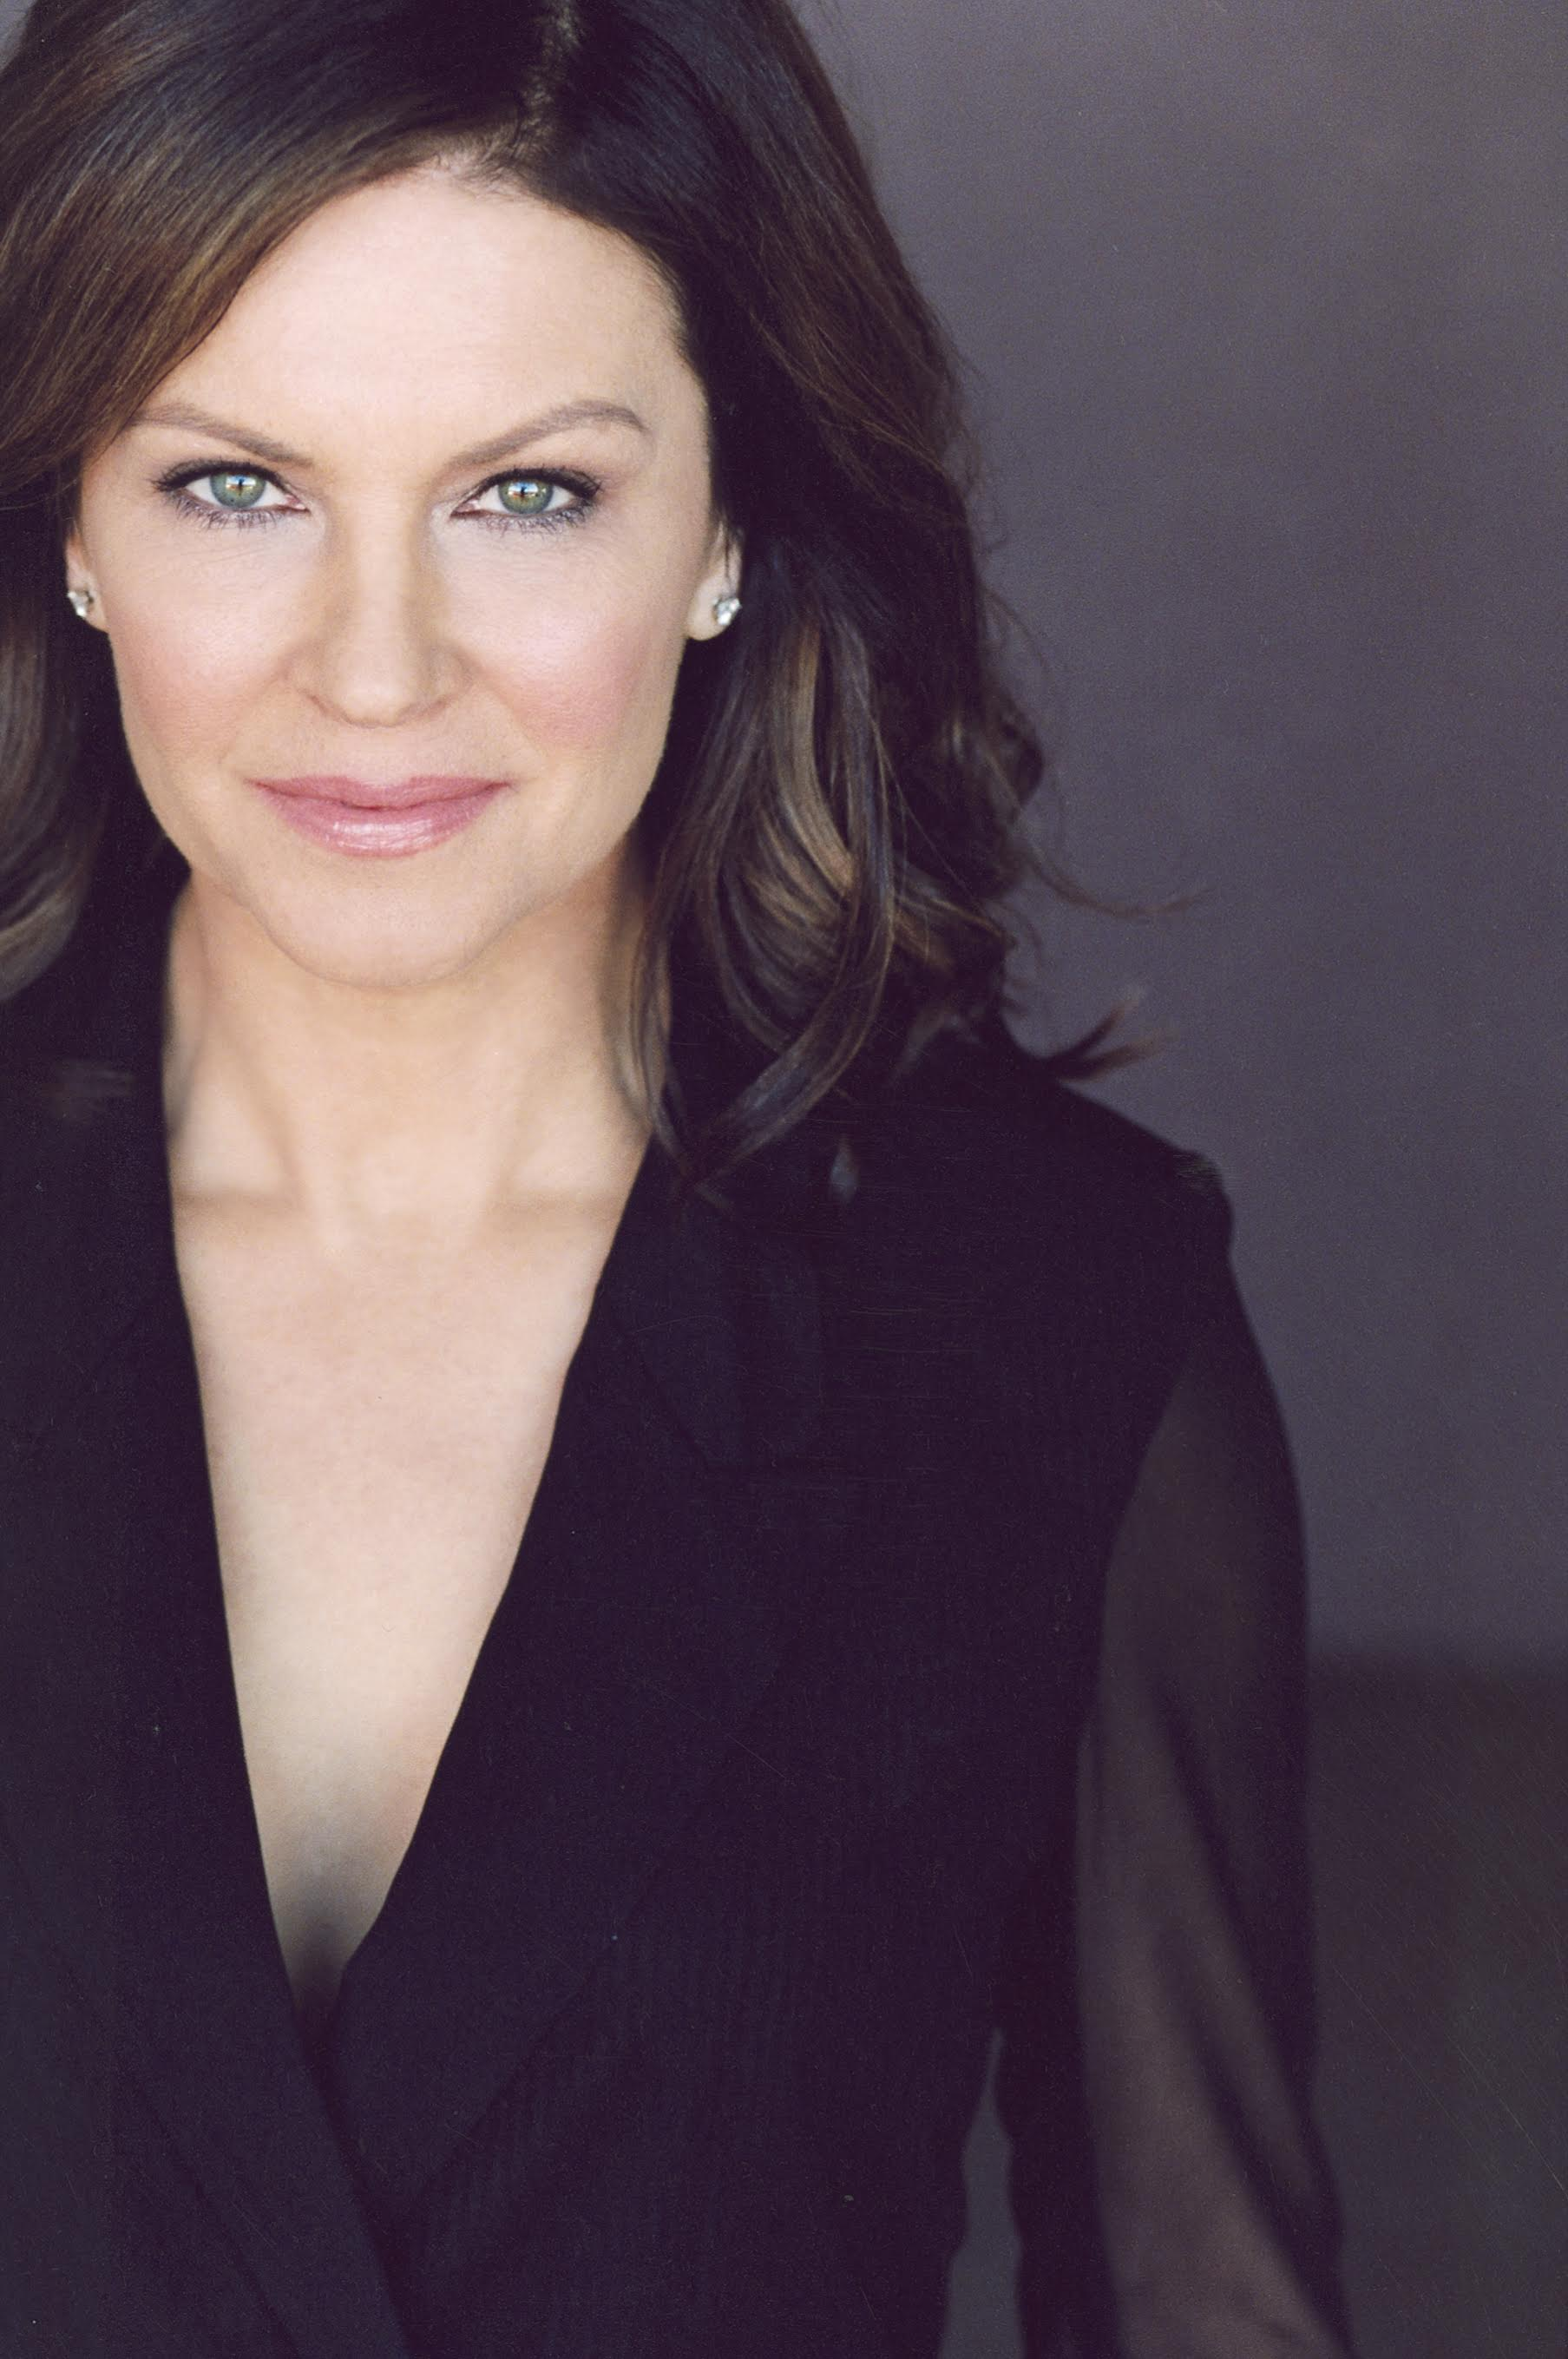 Wendy Crewson Nude Photos 26